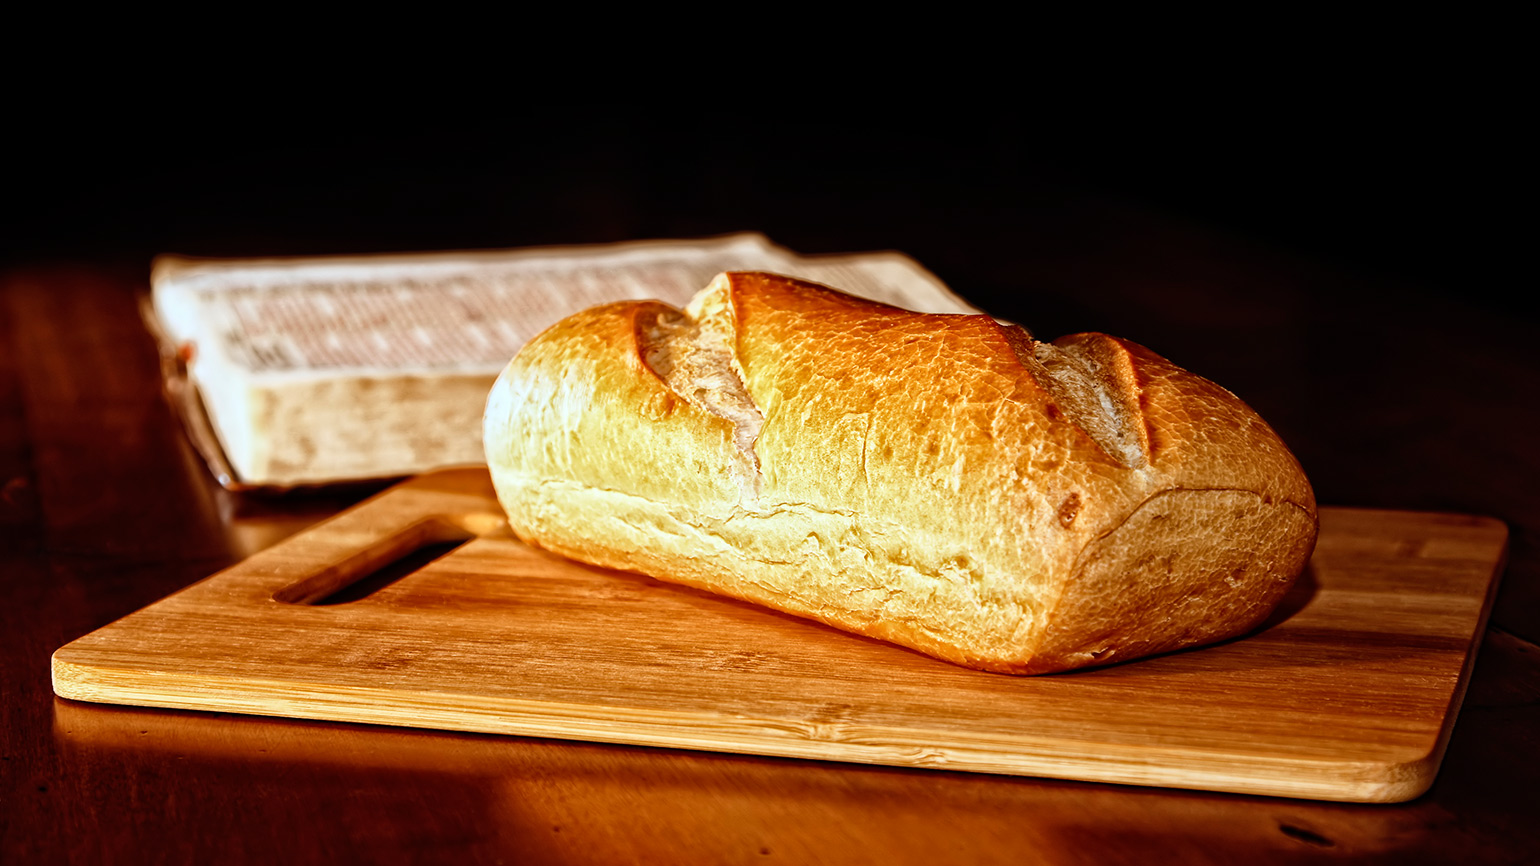 A loaf of fresh-baked bread rests by an open Bible